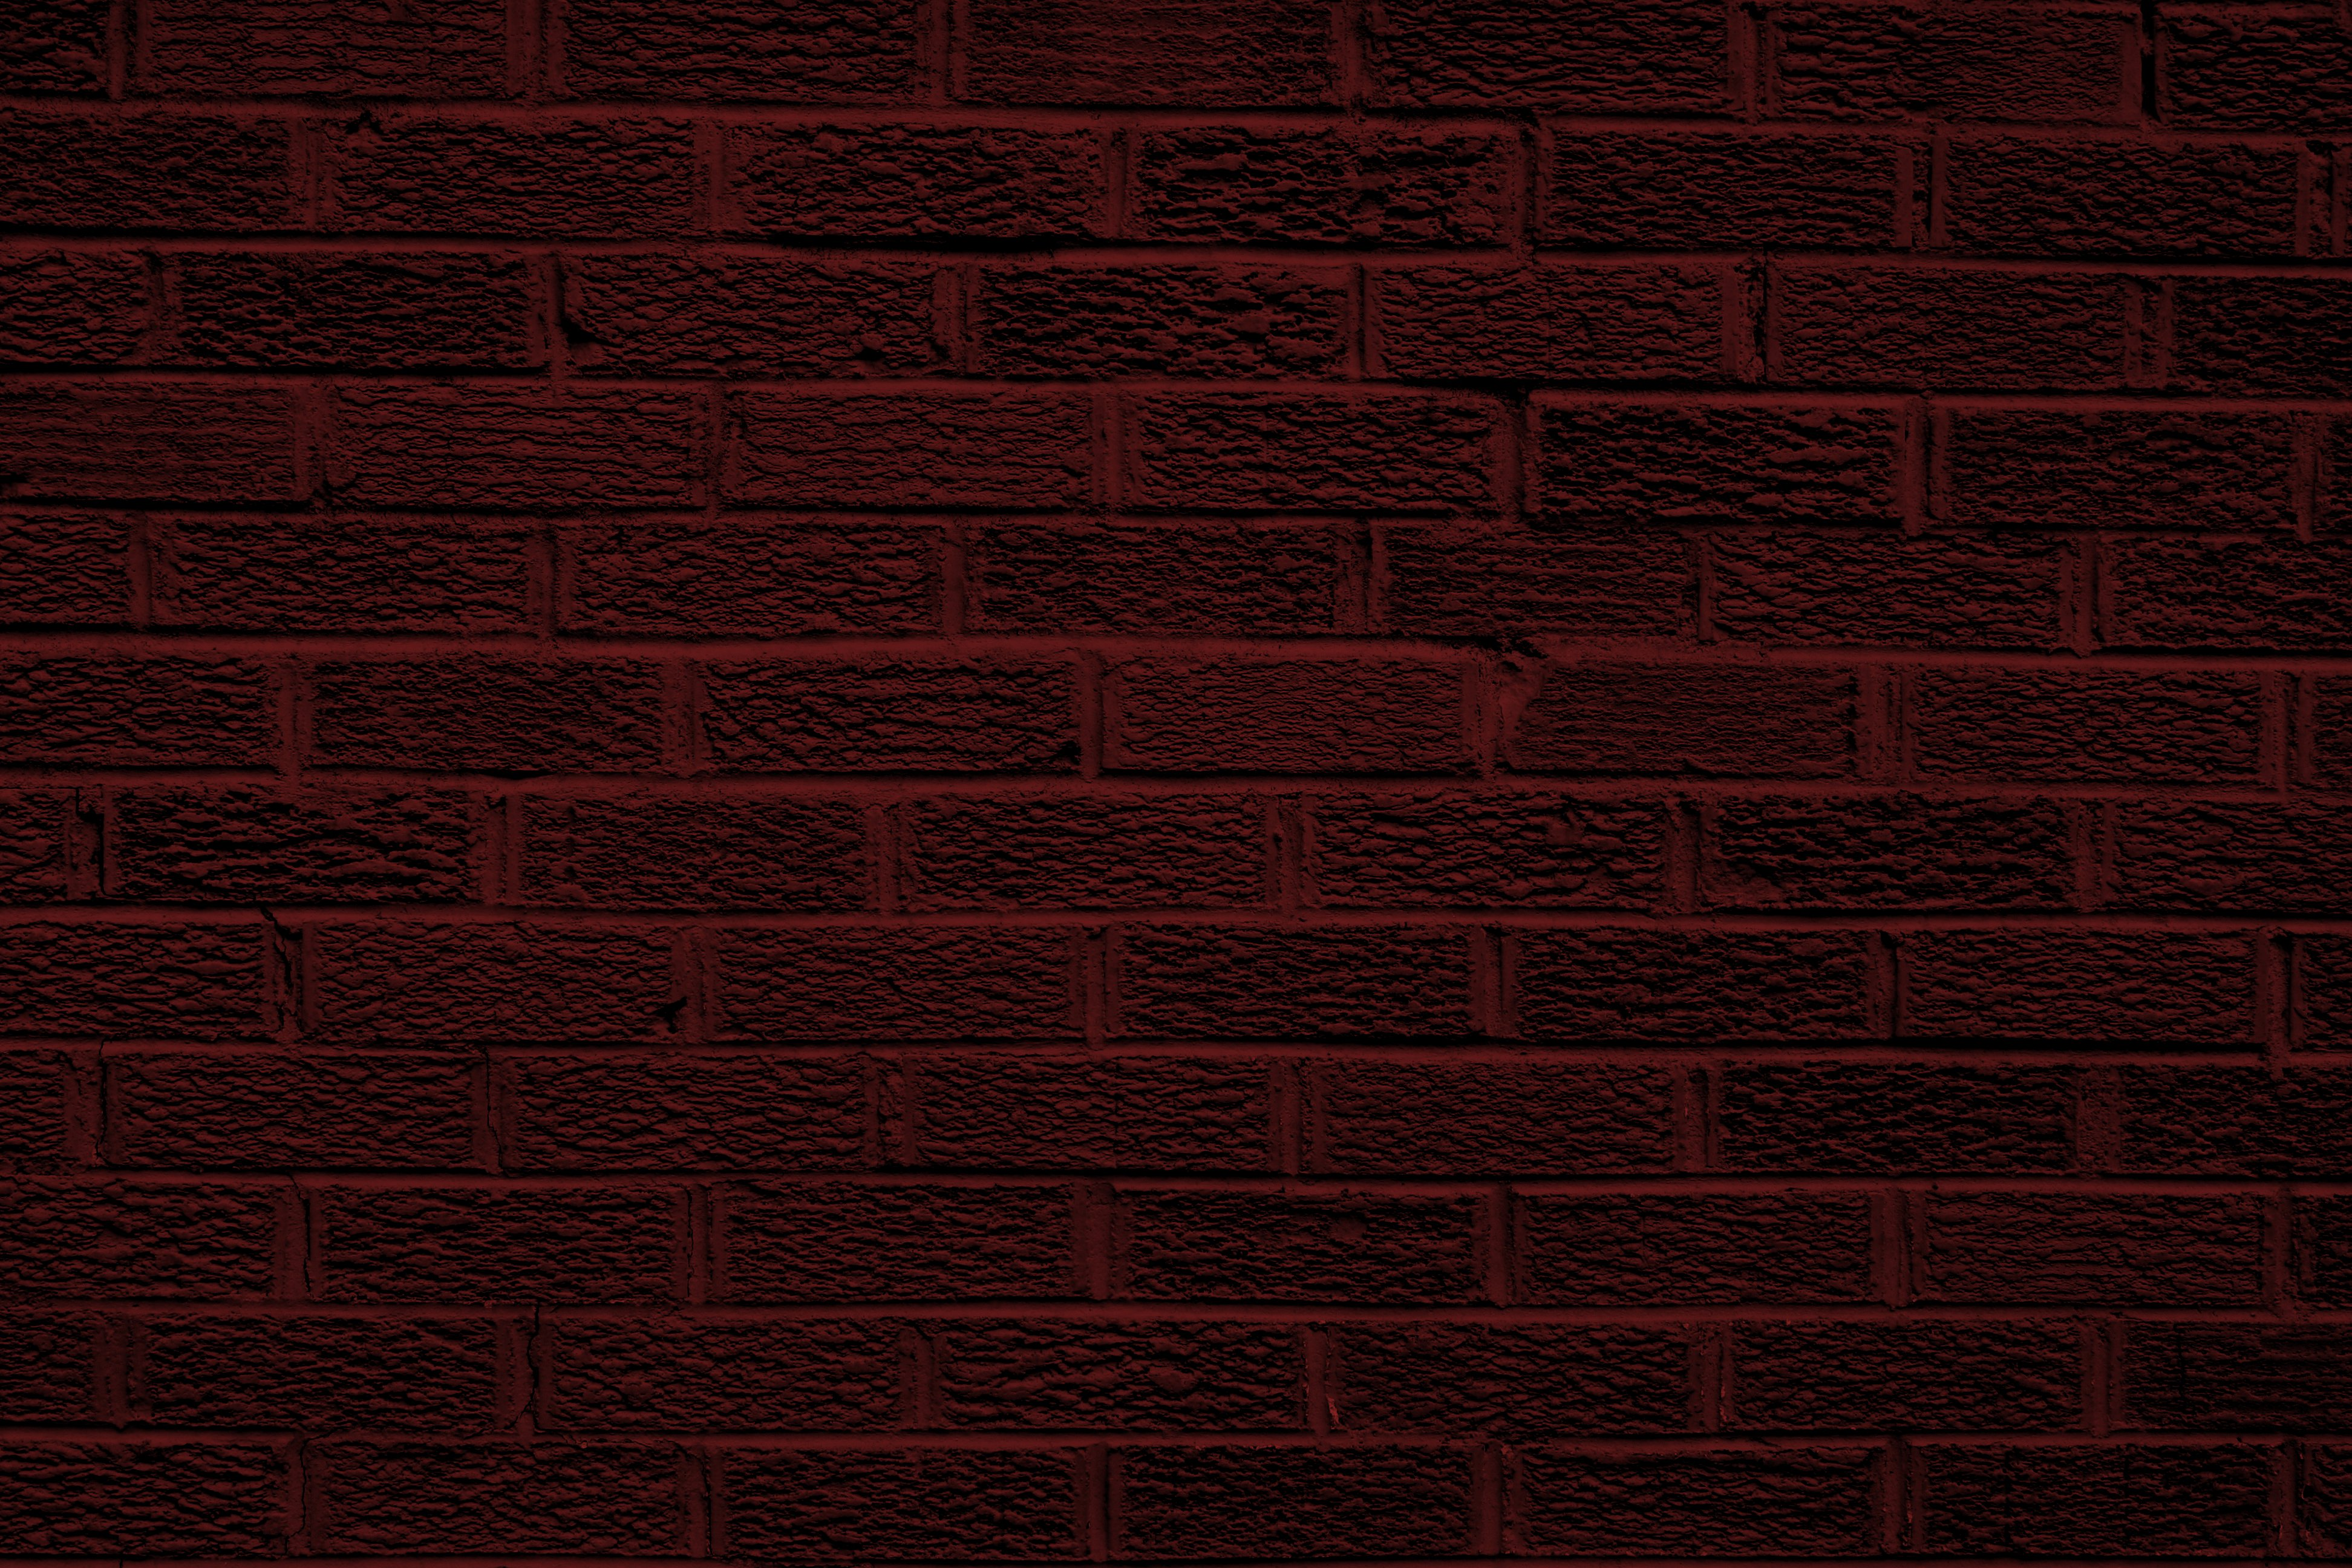 Dark Red Brick Wall Texture Picture Photograph Photos Public 3888x2592